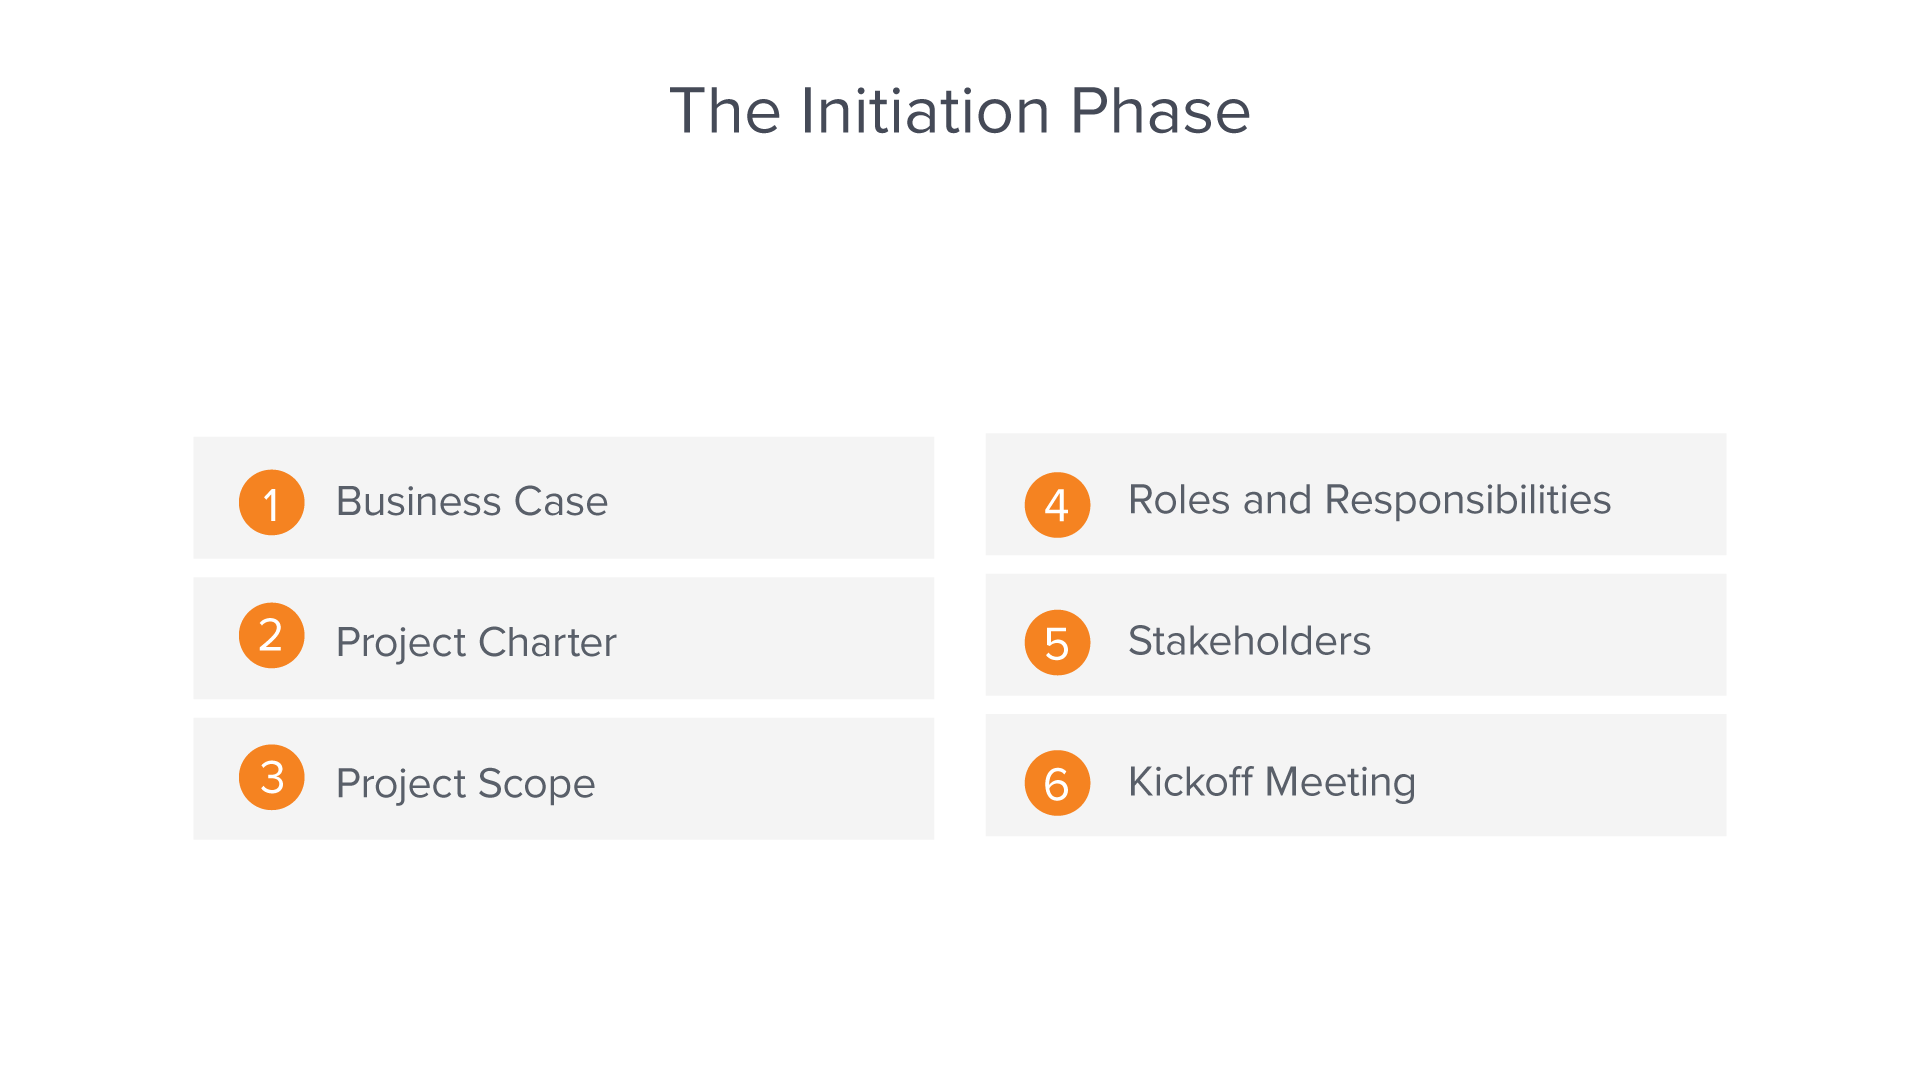 The project initiation process